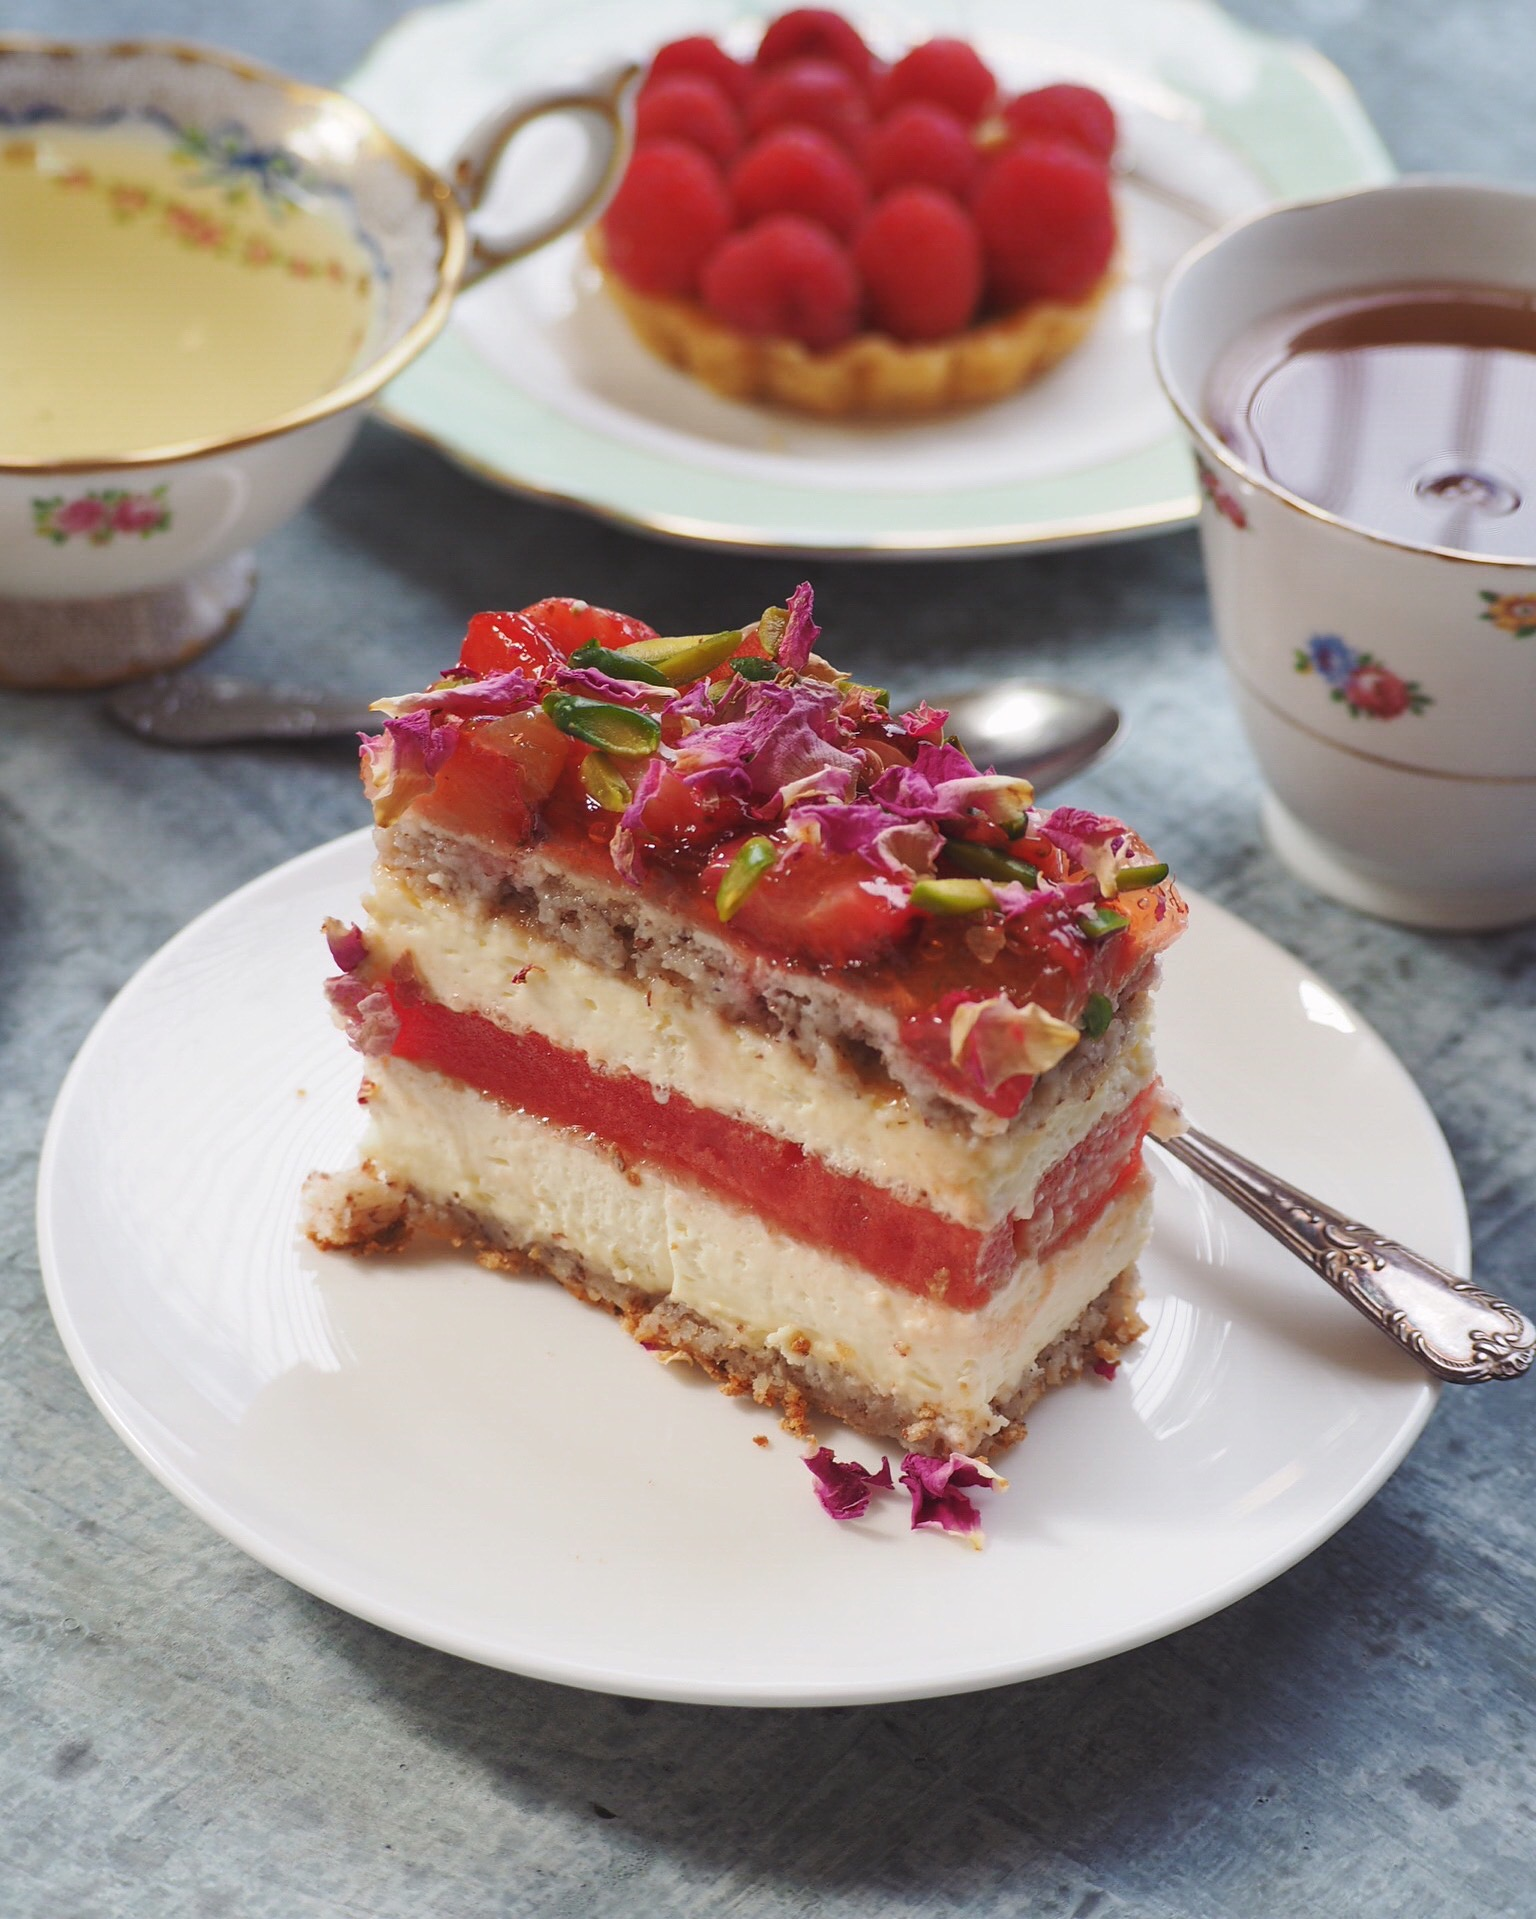 Strawberry Watermelon Cake from Black Star Pastry